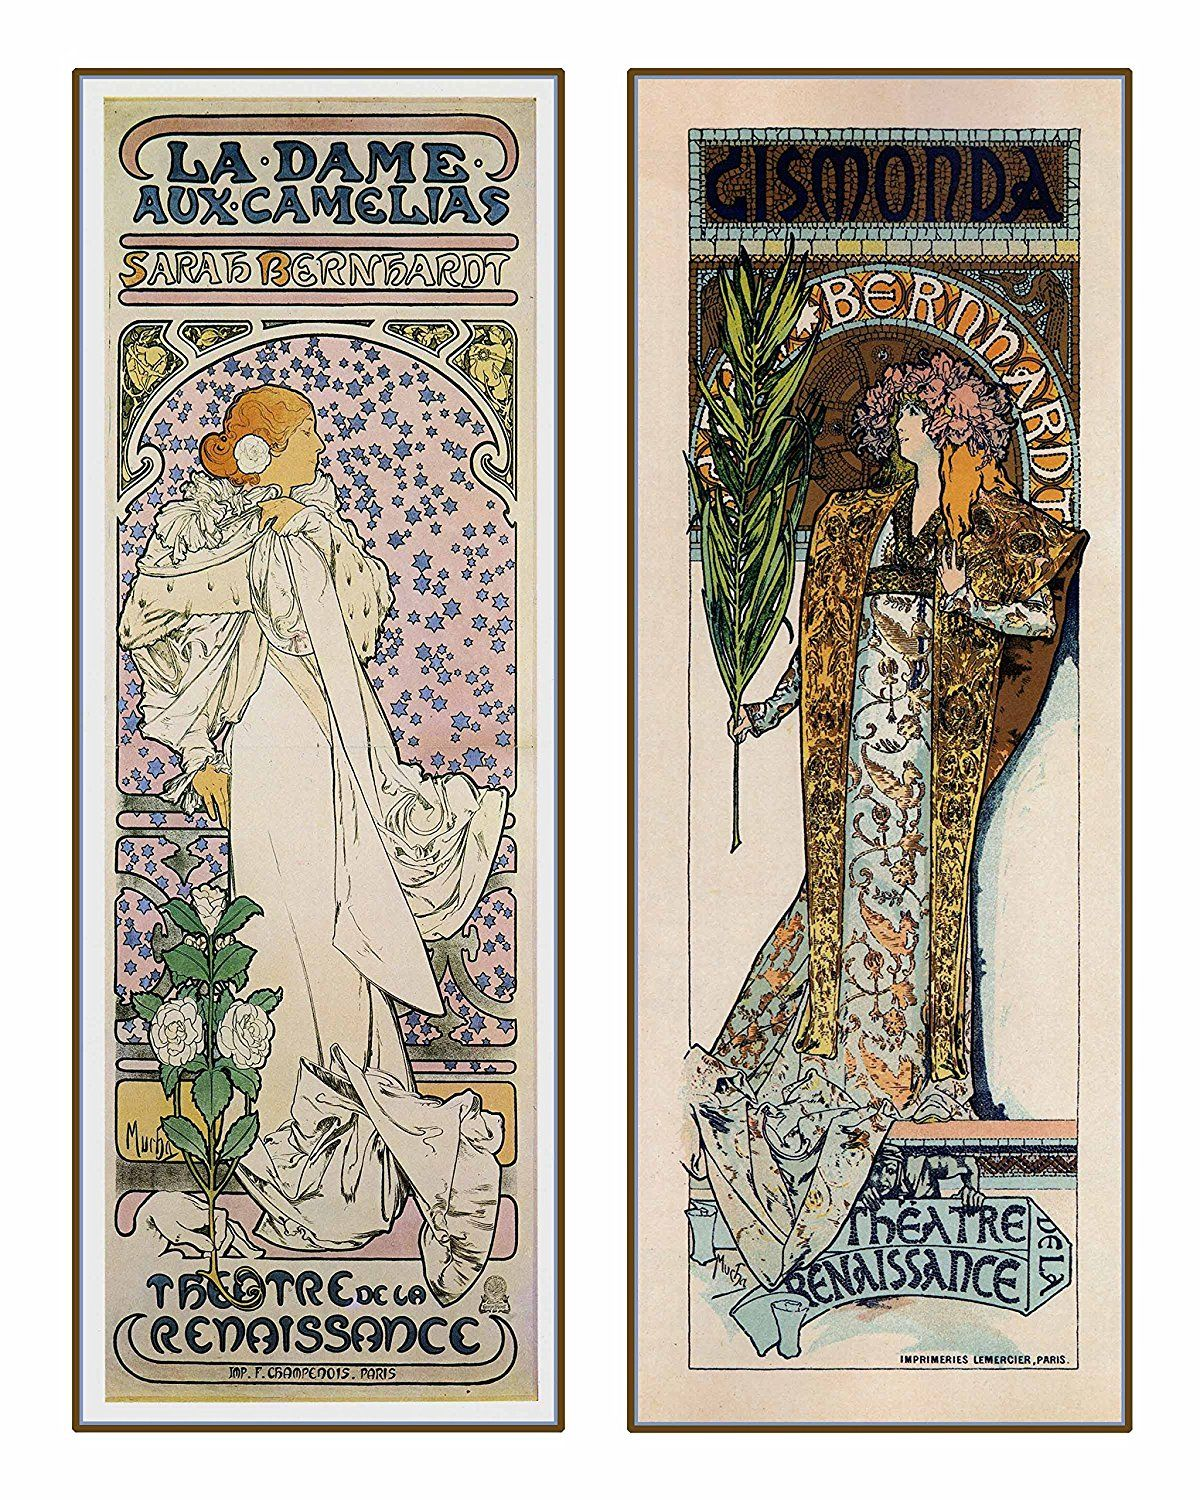 Style De La Renaissance amazonsmile: decorative art nouveau advertisement reprint